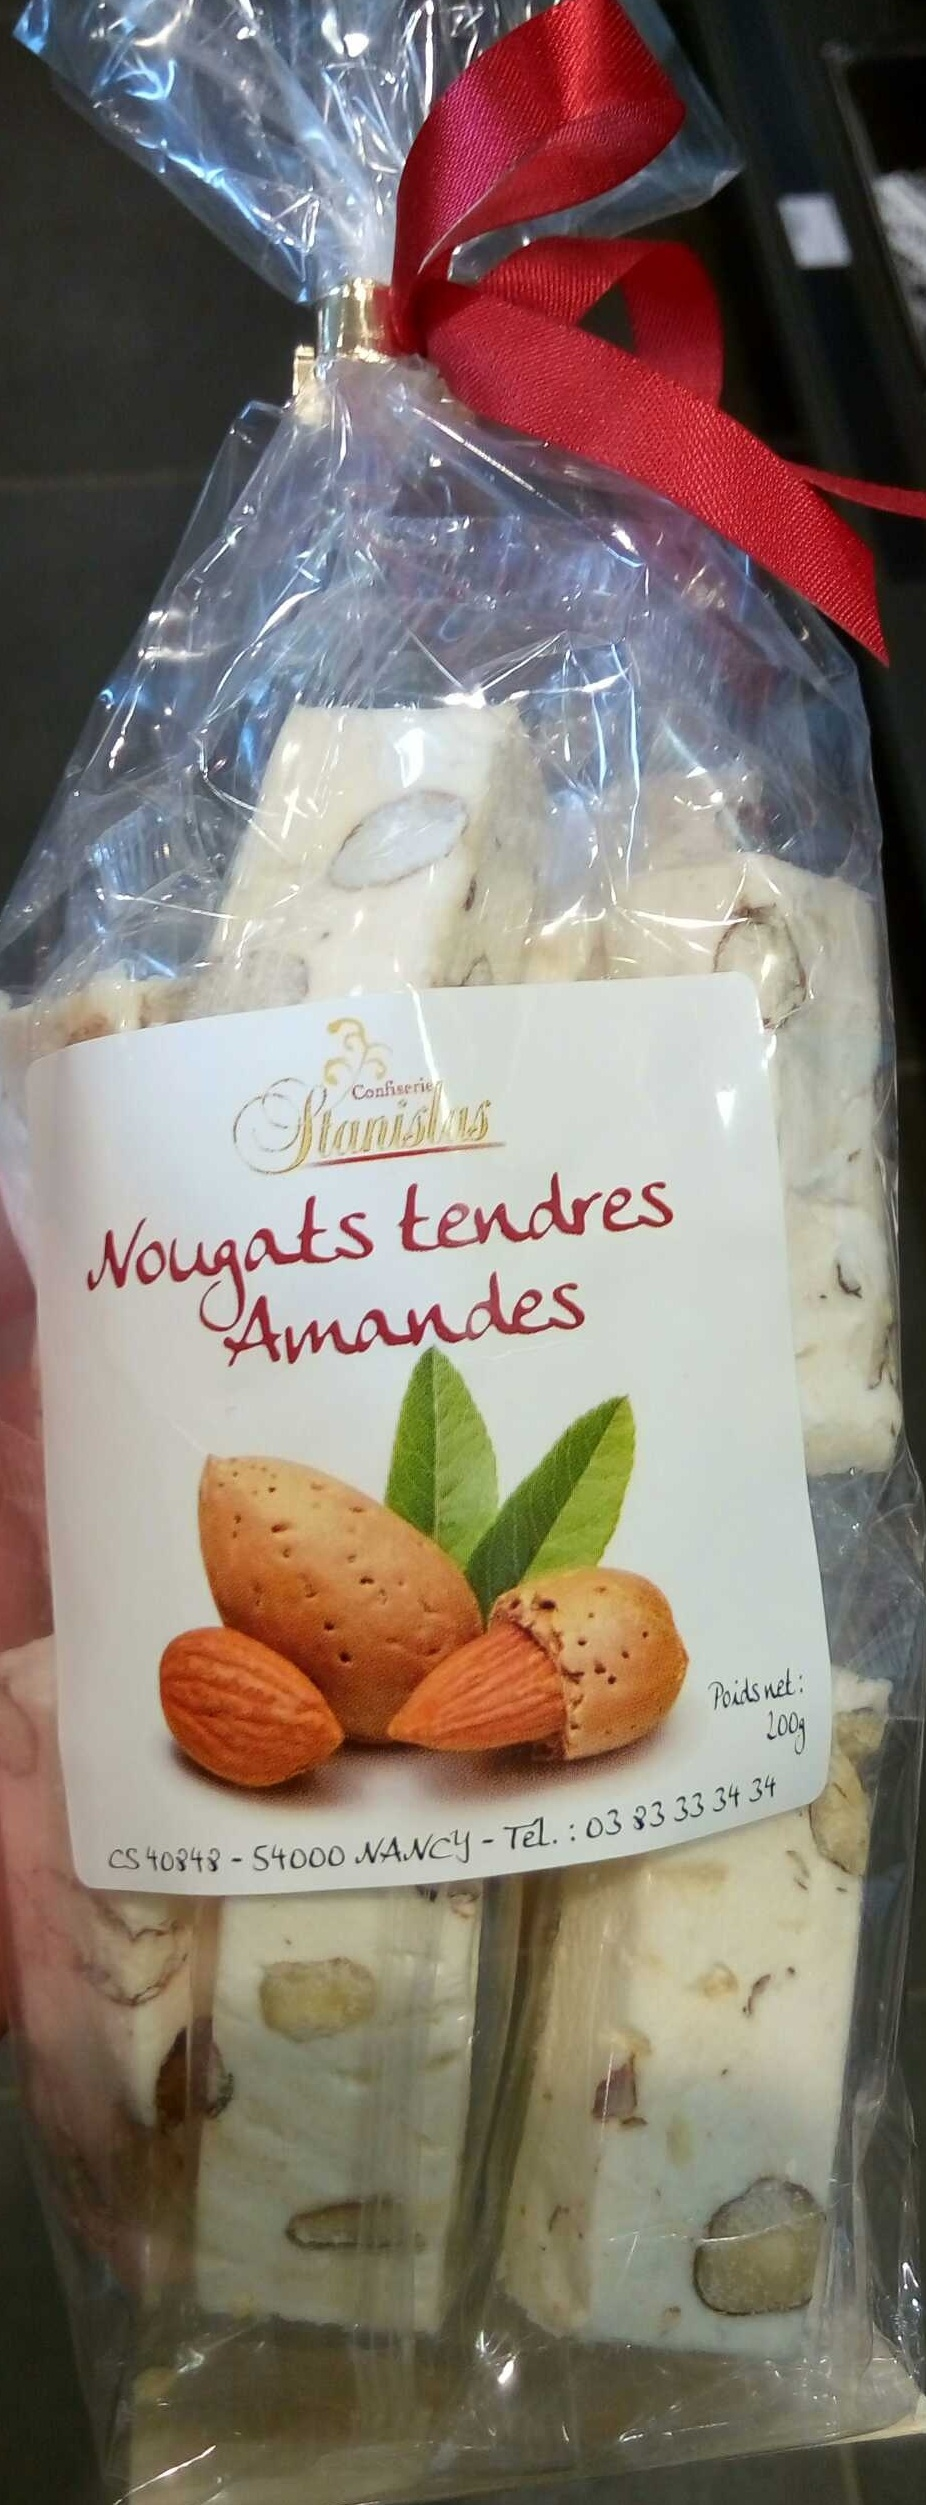 Nougats tendres Amandes - Product